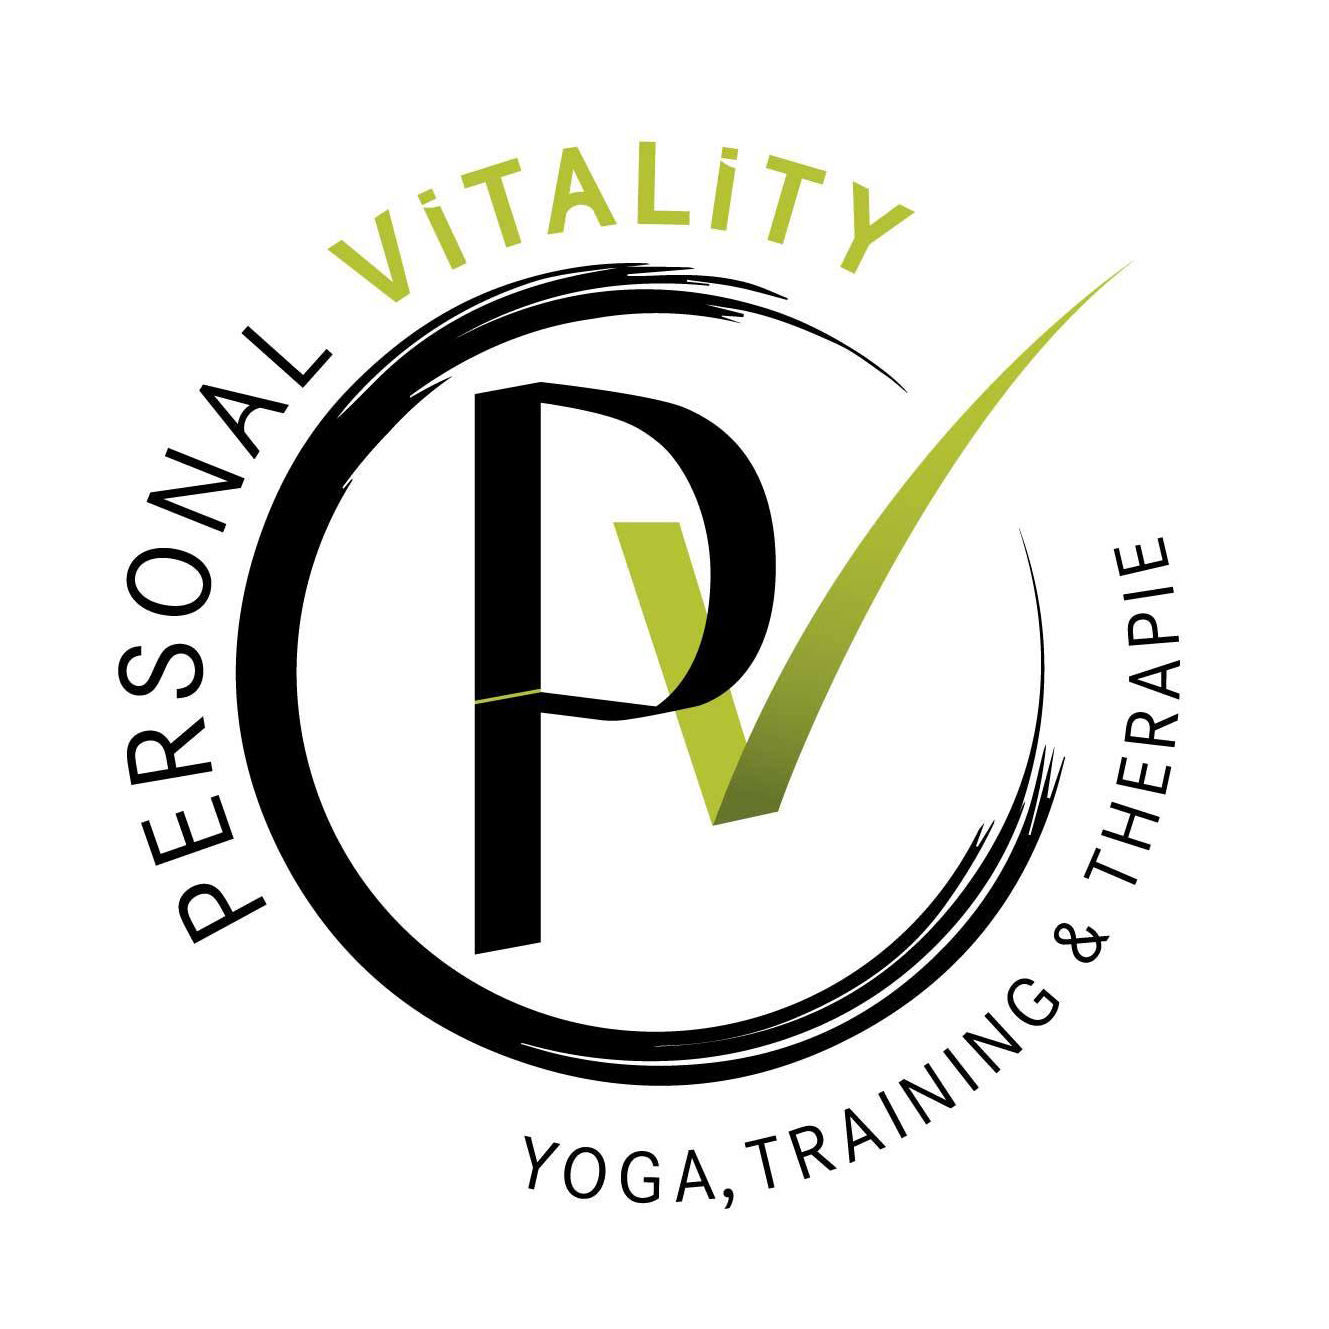 Personal Vitality